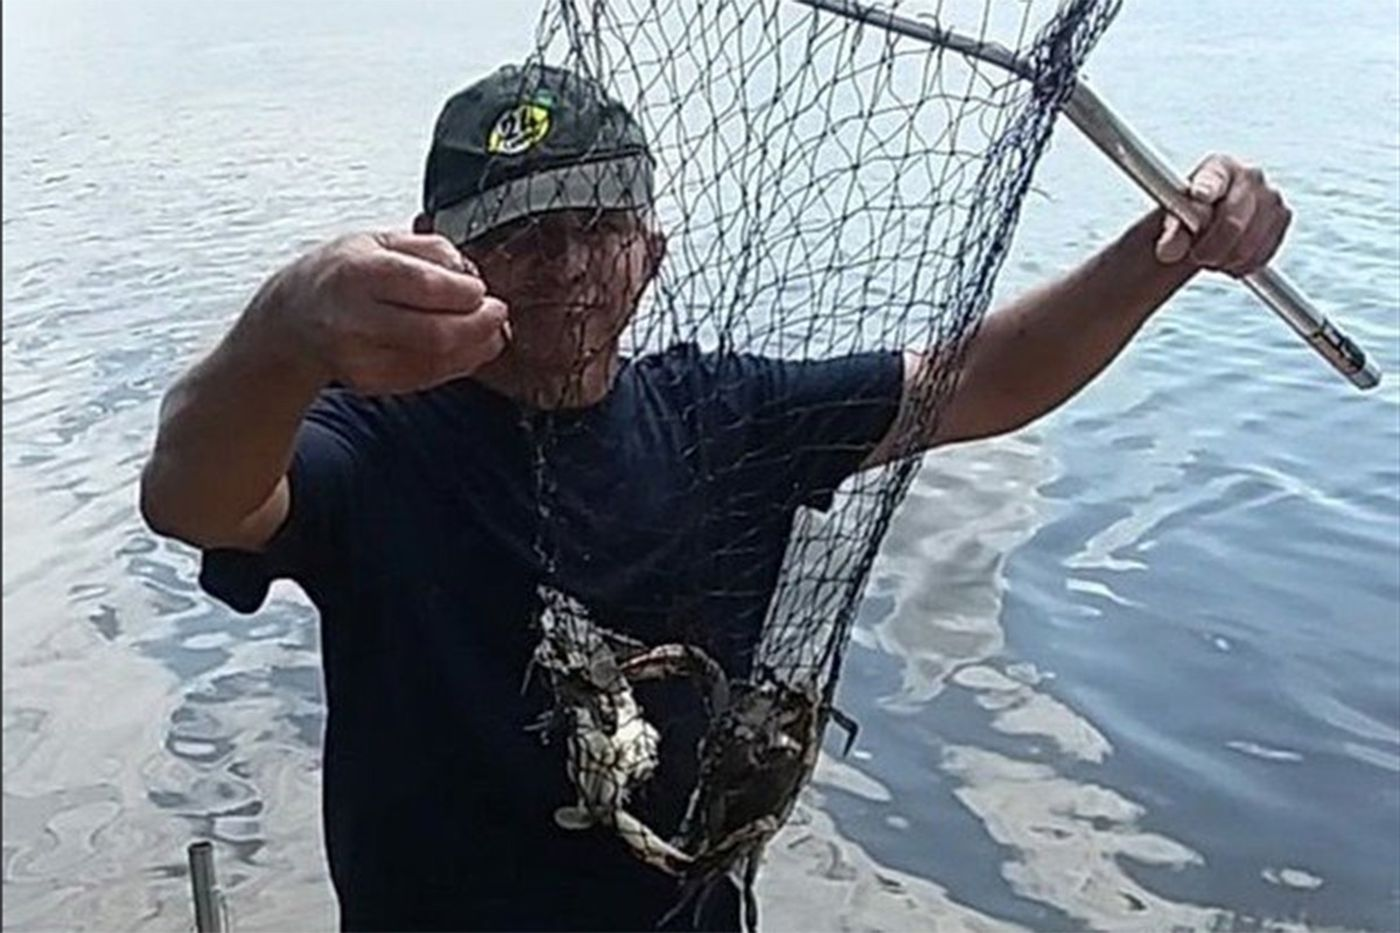 N.J. man infected with flesh-eating bacteria while crabbing, could lose limbs